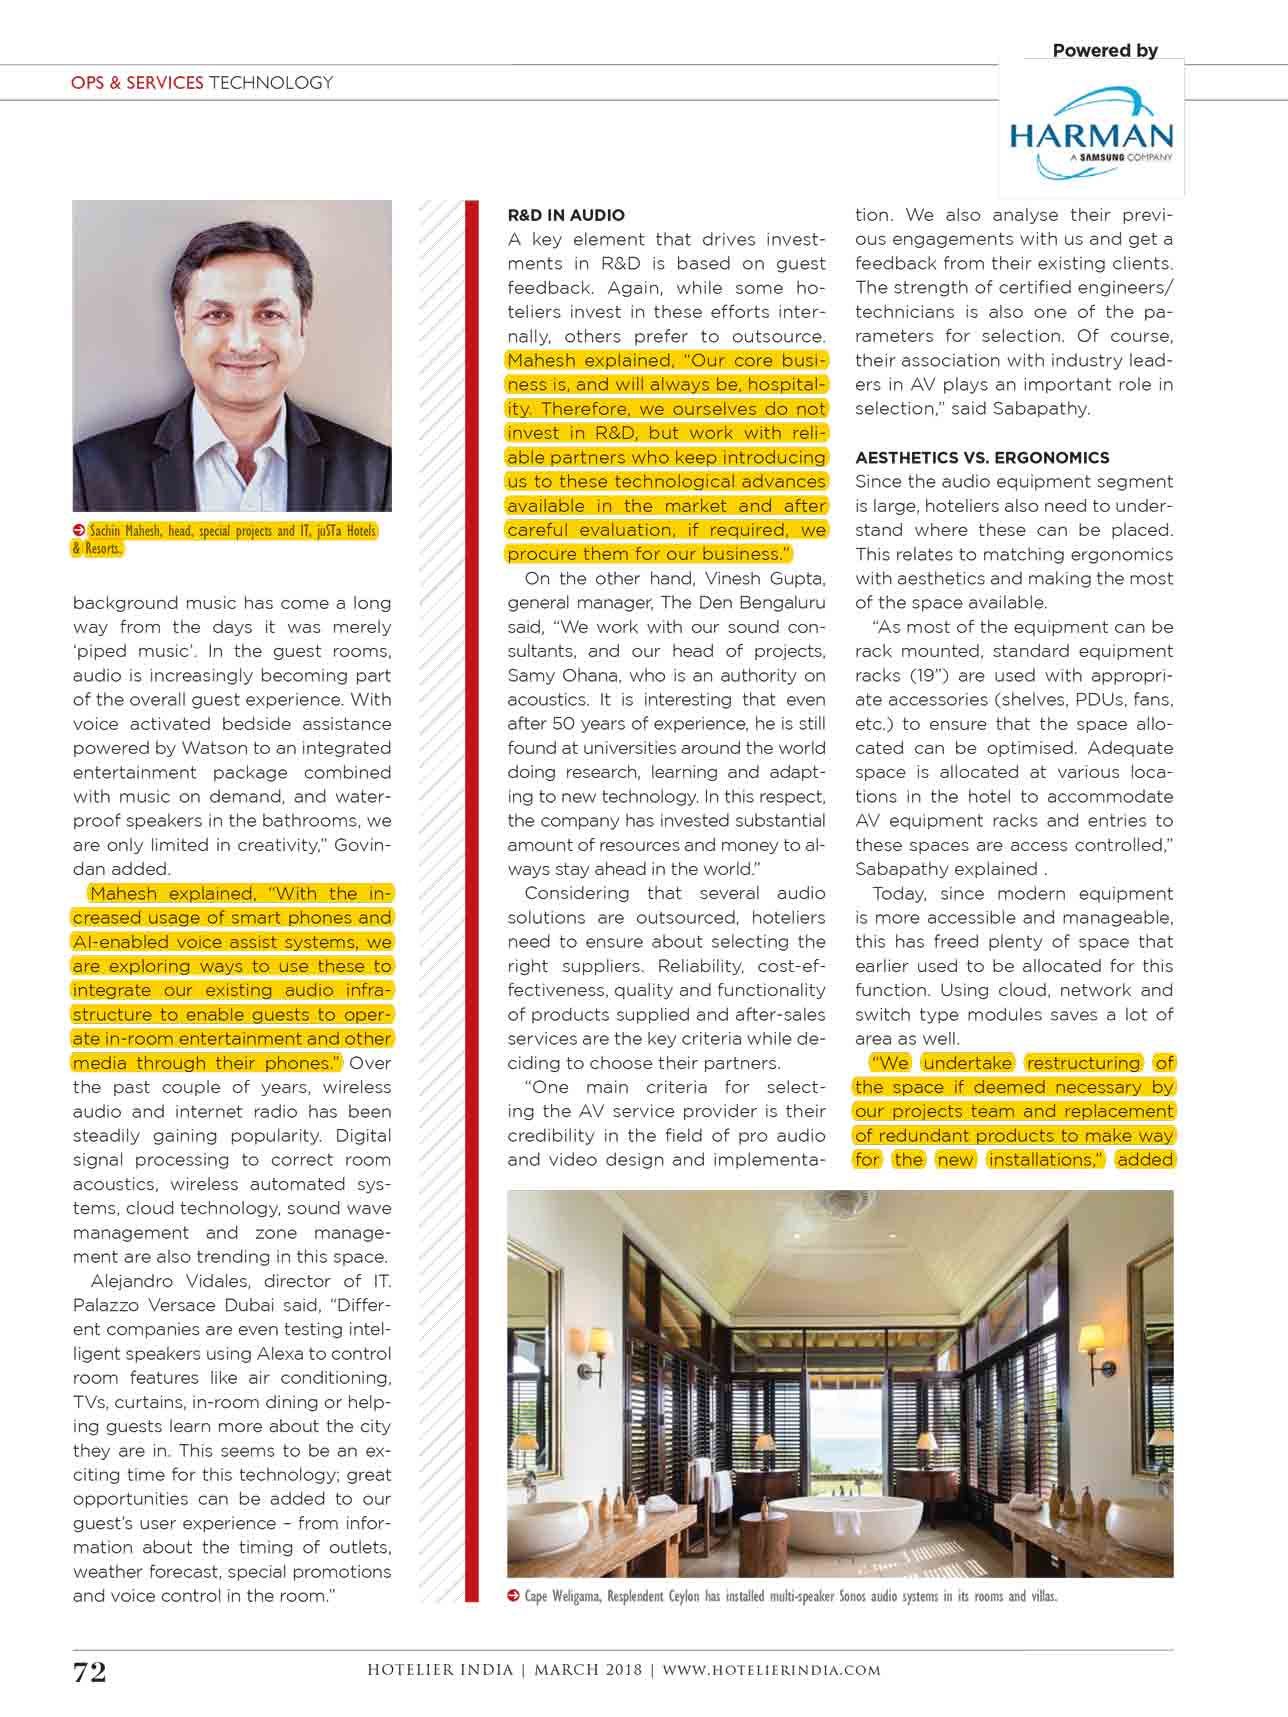 hotelier-india-in-conversation-with-justa-management-on-audio-systems